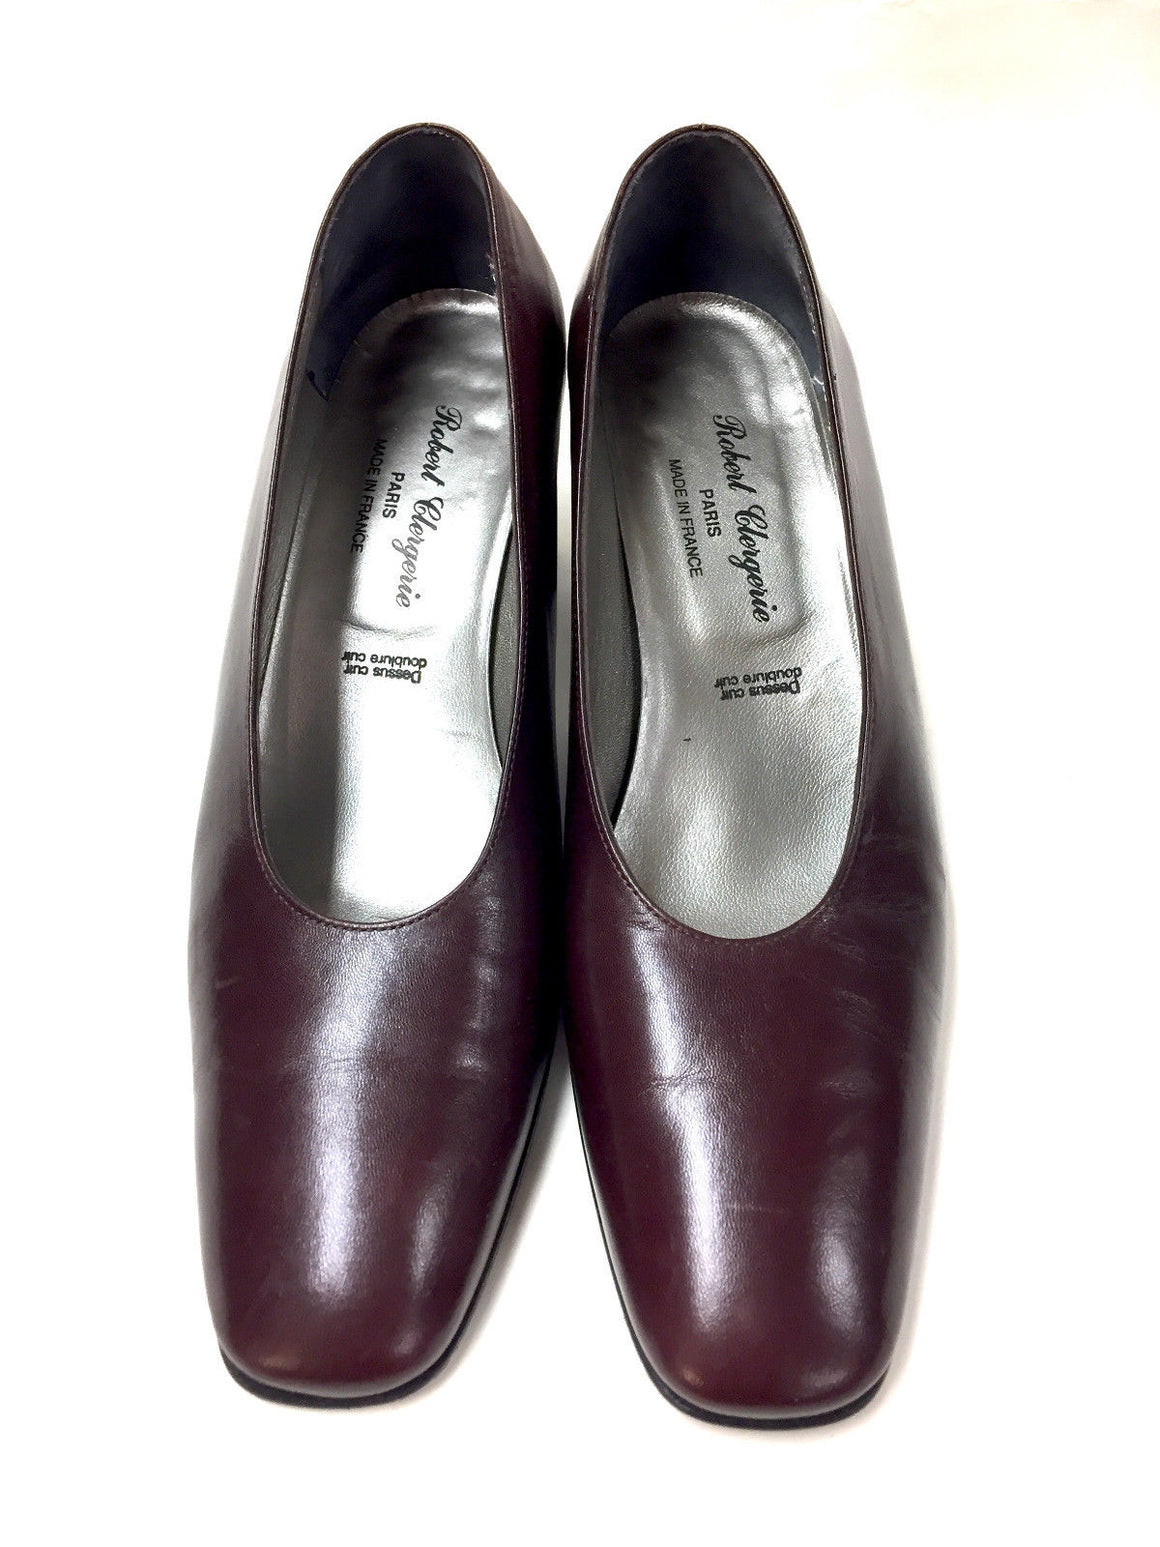 ROBERT CLERGERIE Cordovan Leather Round Toe Heel Pumps  Size: 8B